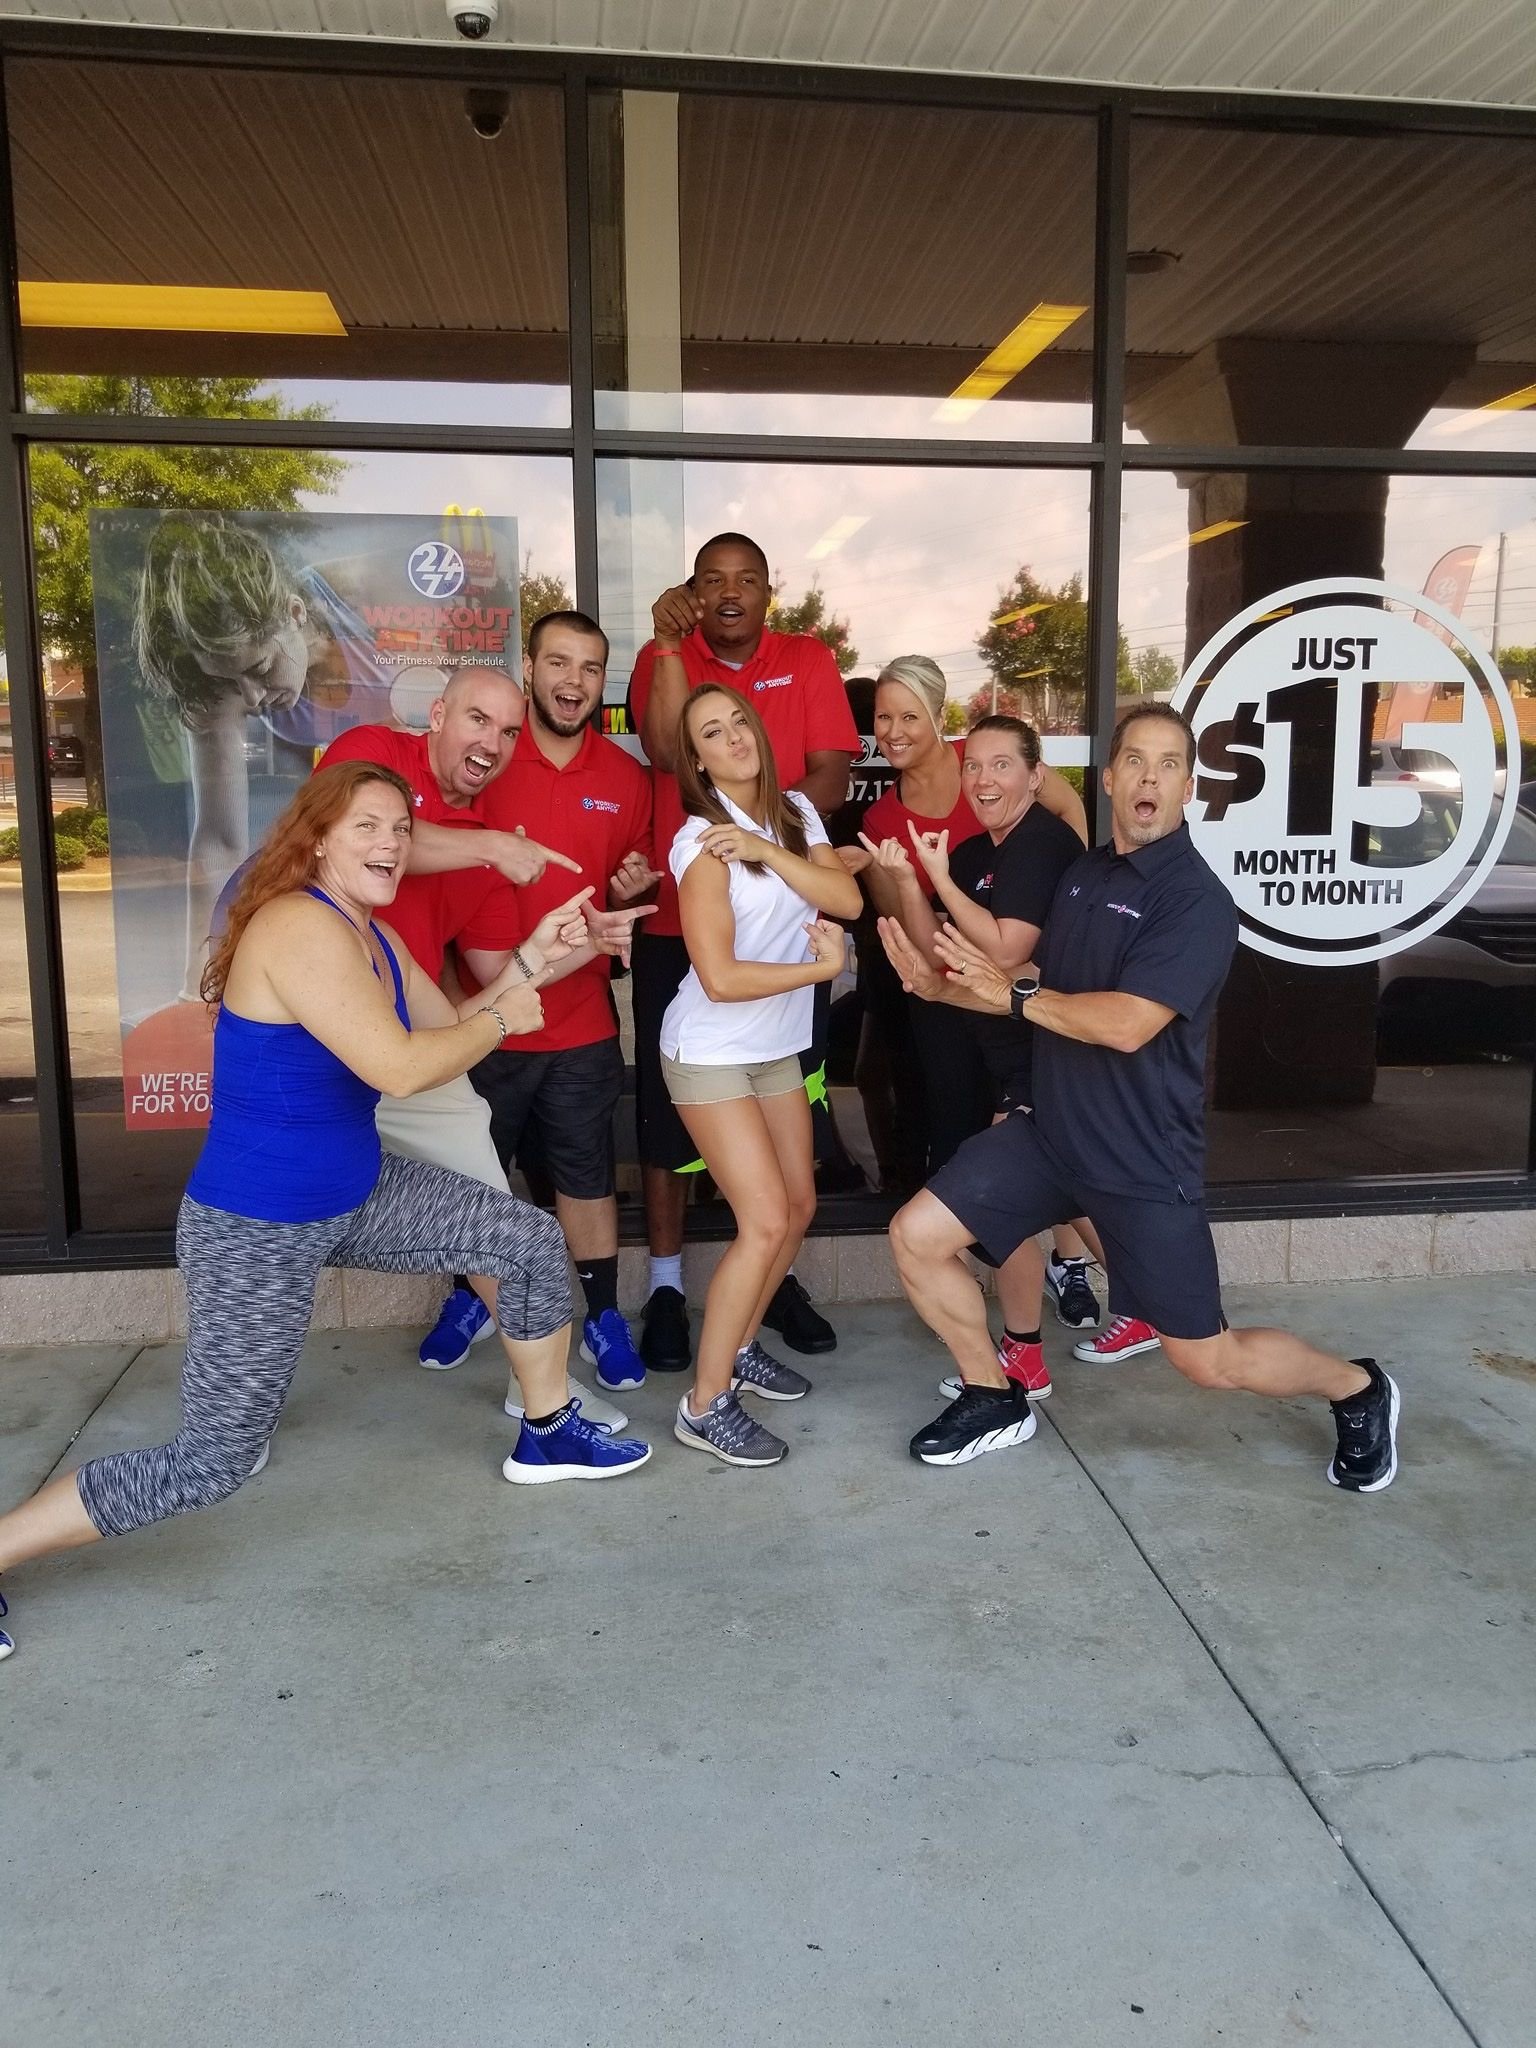 Workout Anytime Boiling Springs South Carolina Team Anytime Fitness Gym Workouts Spring Workout